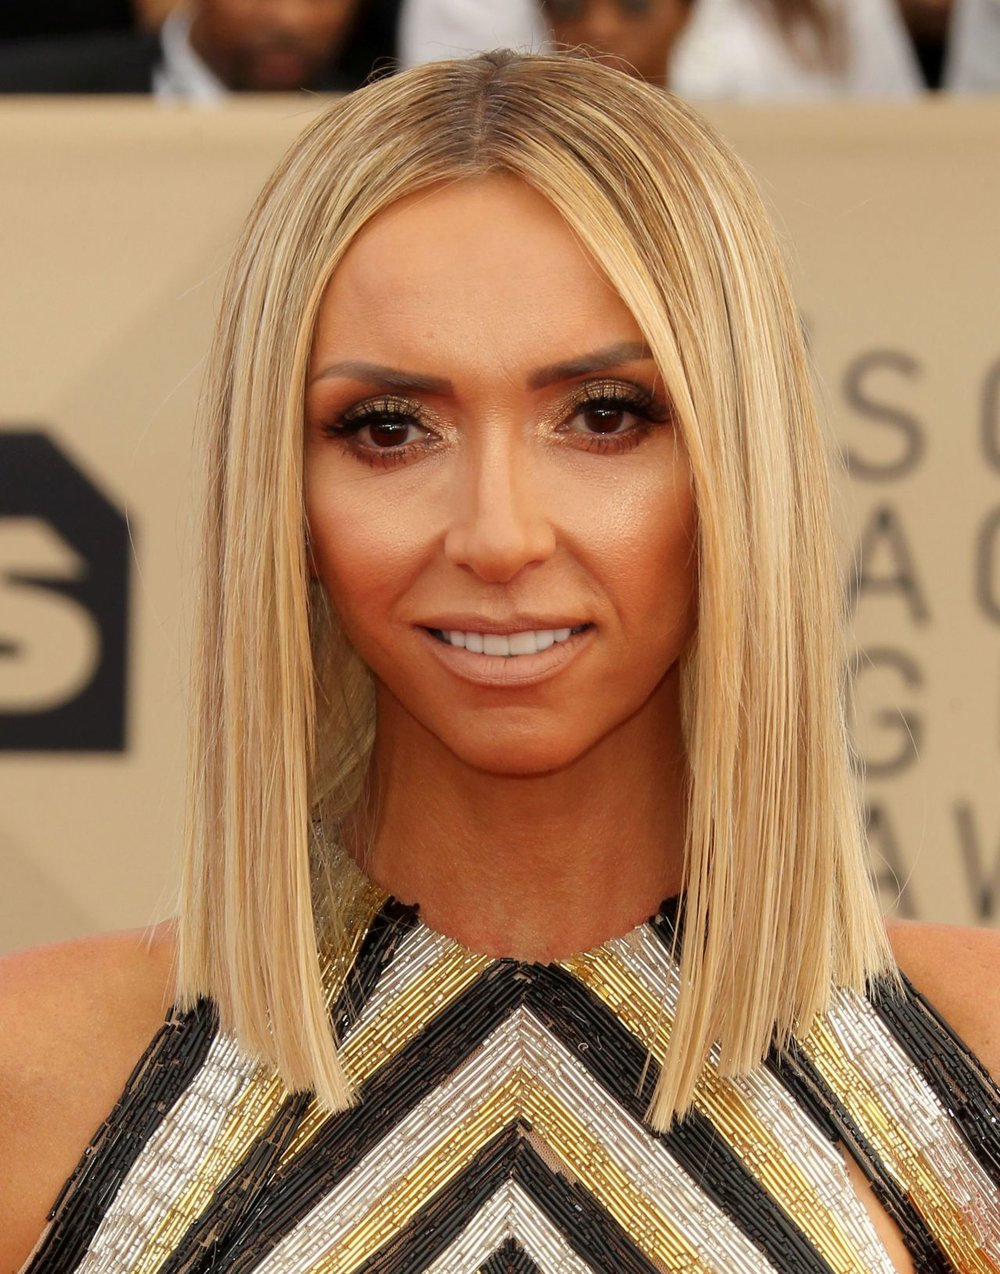 giuliana-rancic-2018-sag-awards-in-la-1.jpg